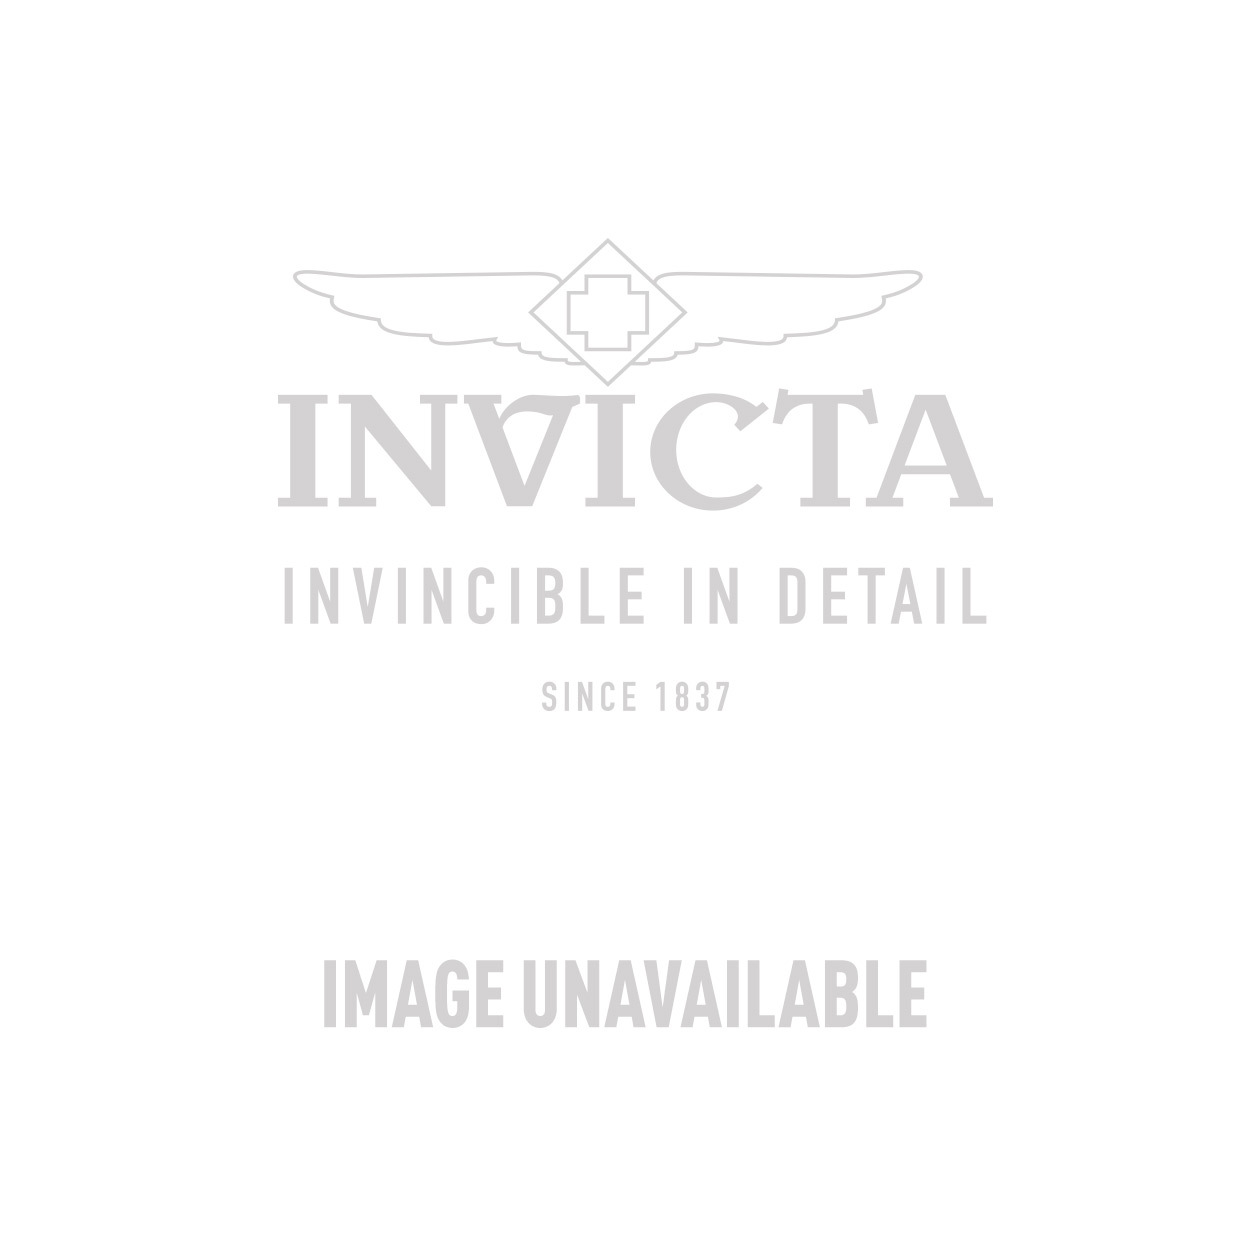 Invicta S1 Rally Automatic Watch - Stainless Steel case with Black, Red tone Silicone band - Model 15862